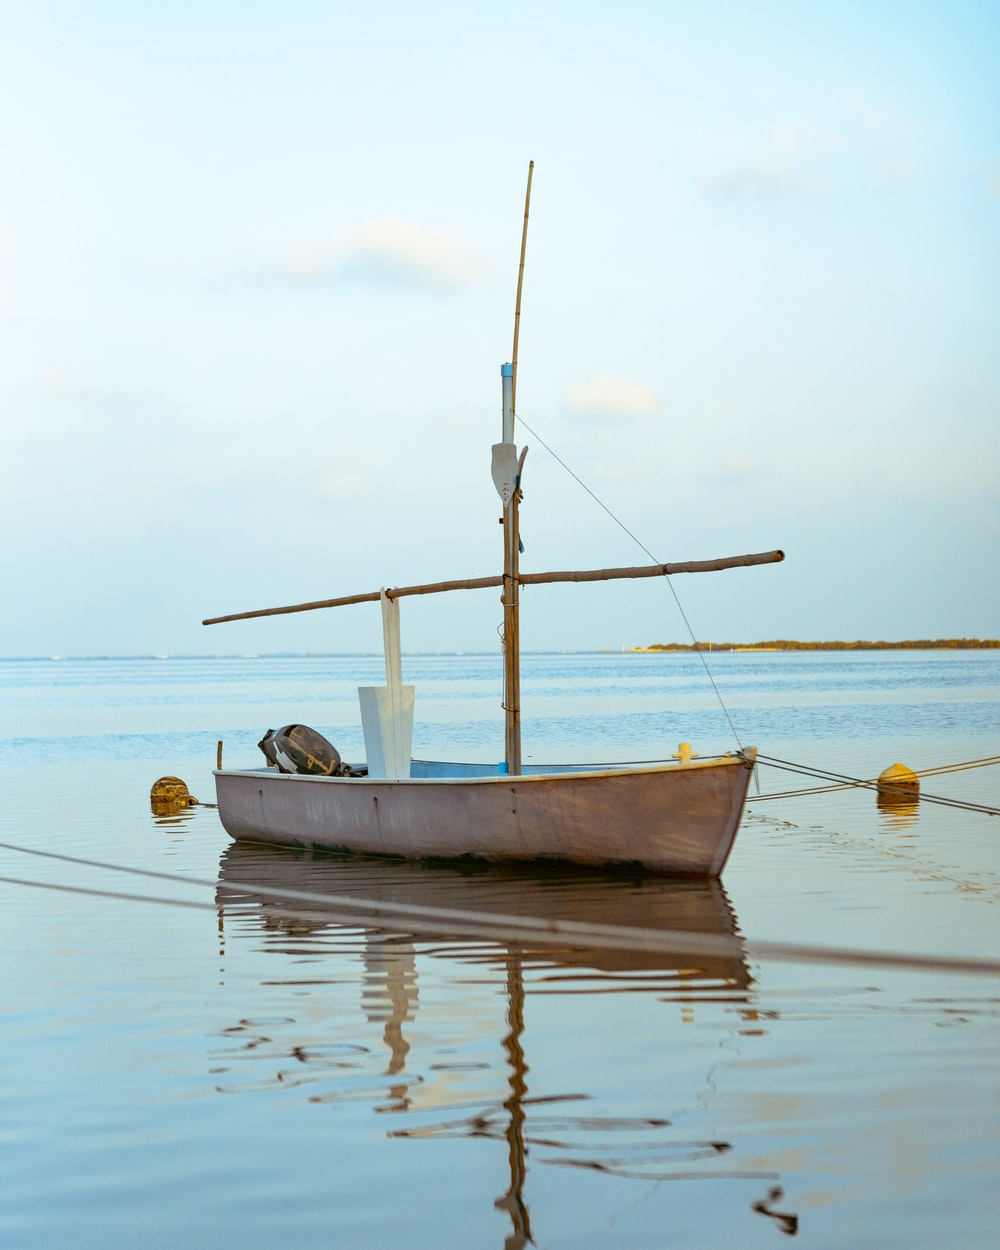 empty boat floating on water